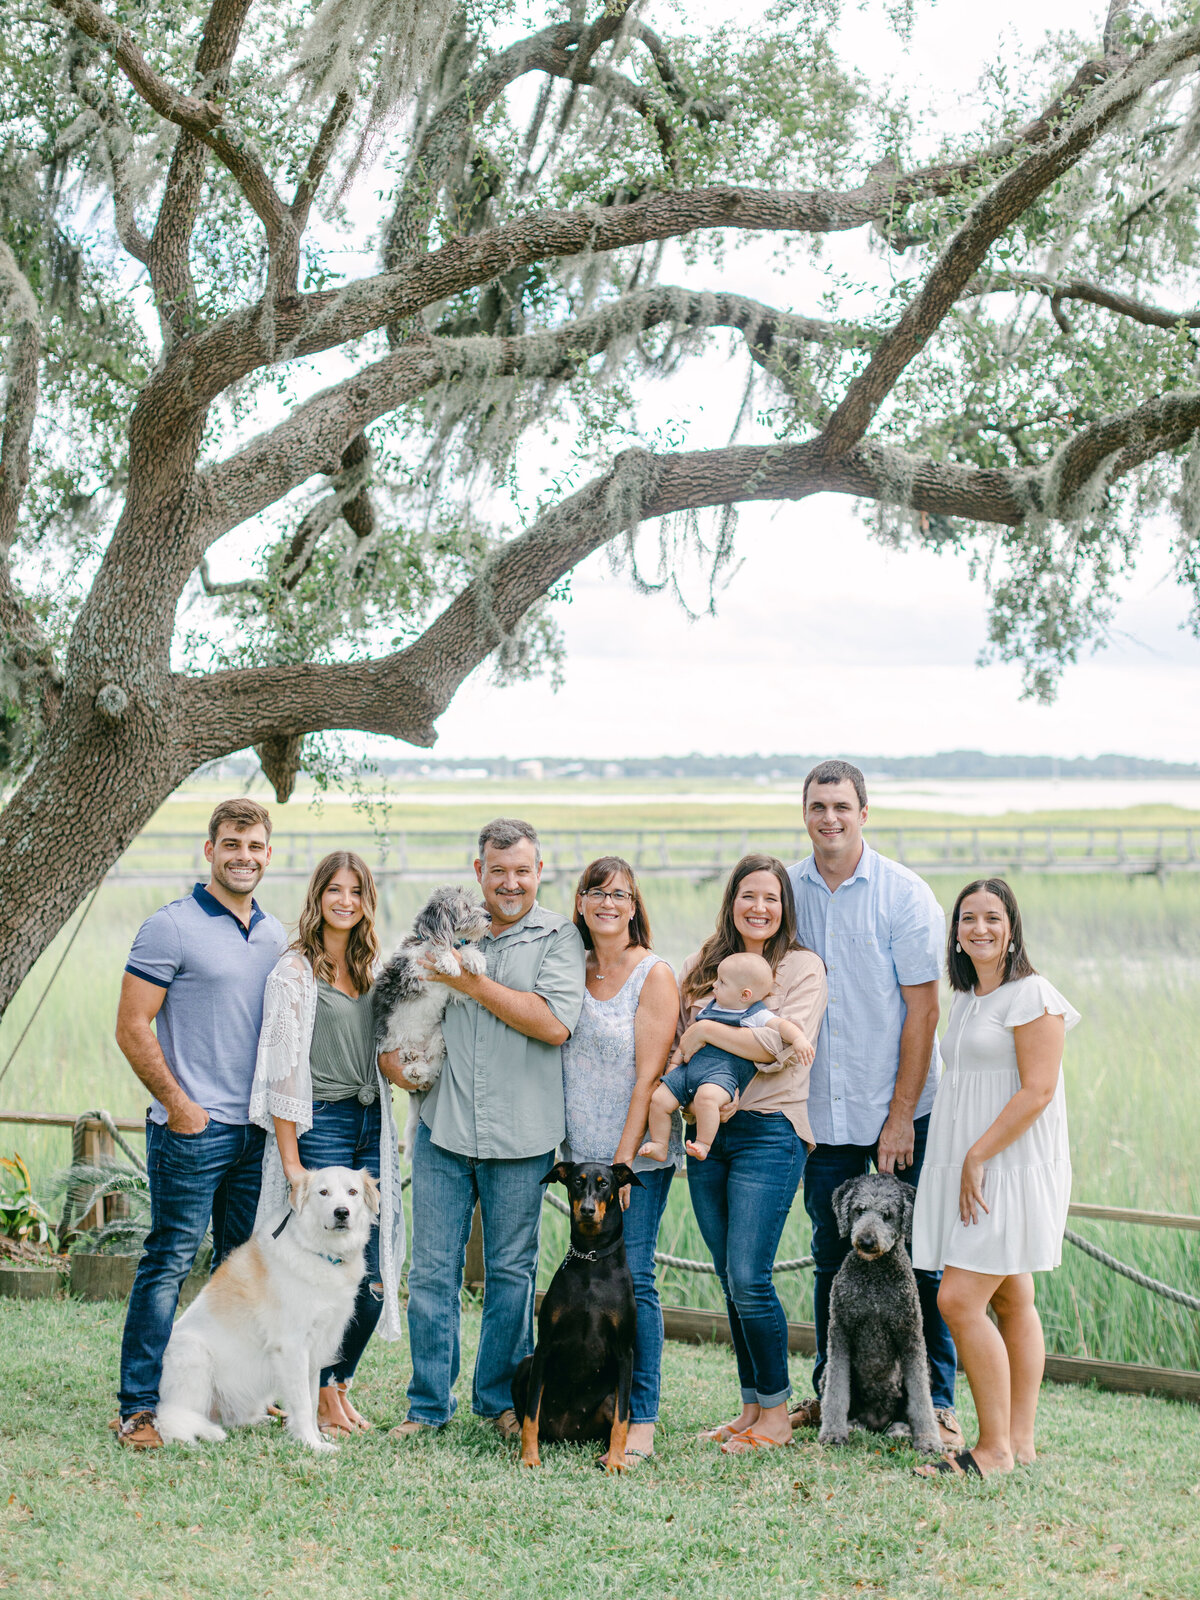 Beaufort Family Photographer | Charleston Family Photograher | Hilton Head Family Photographer | Hilton Head Island Wedding Photographer | Savannah Wedding Photographer | Beaufort Wedding Photographer _ ARP-1